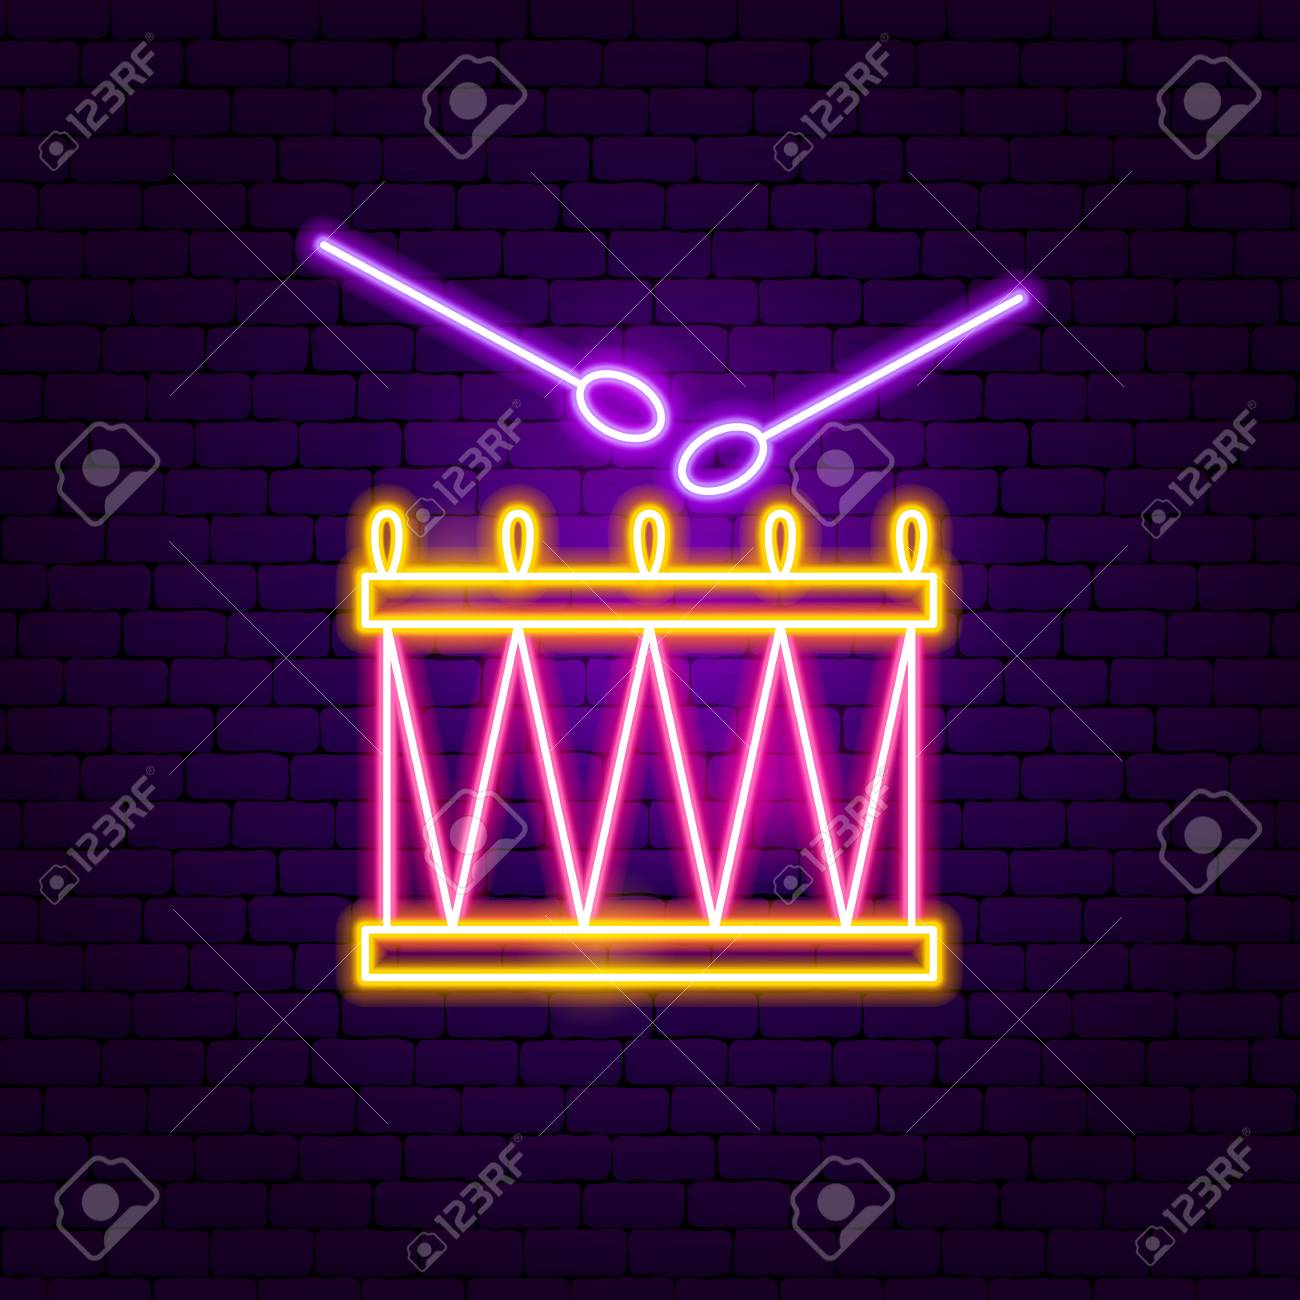 Drum Neon Sign  Vector Illustration of Music Promotion